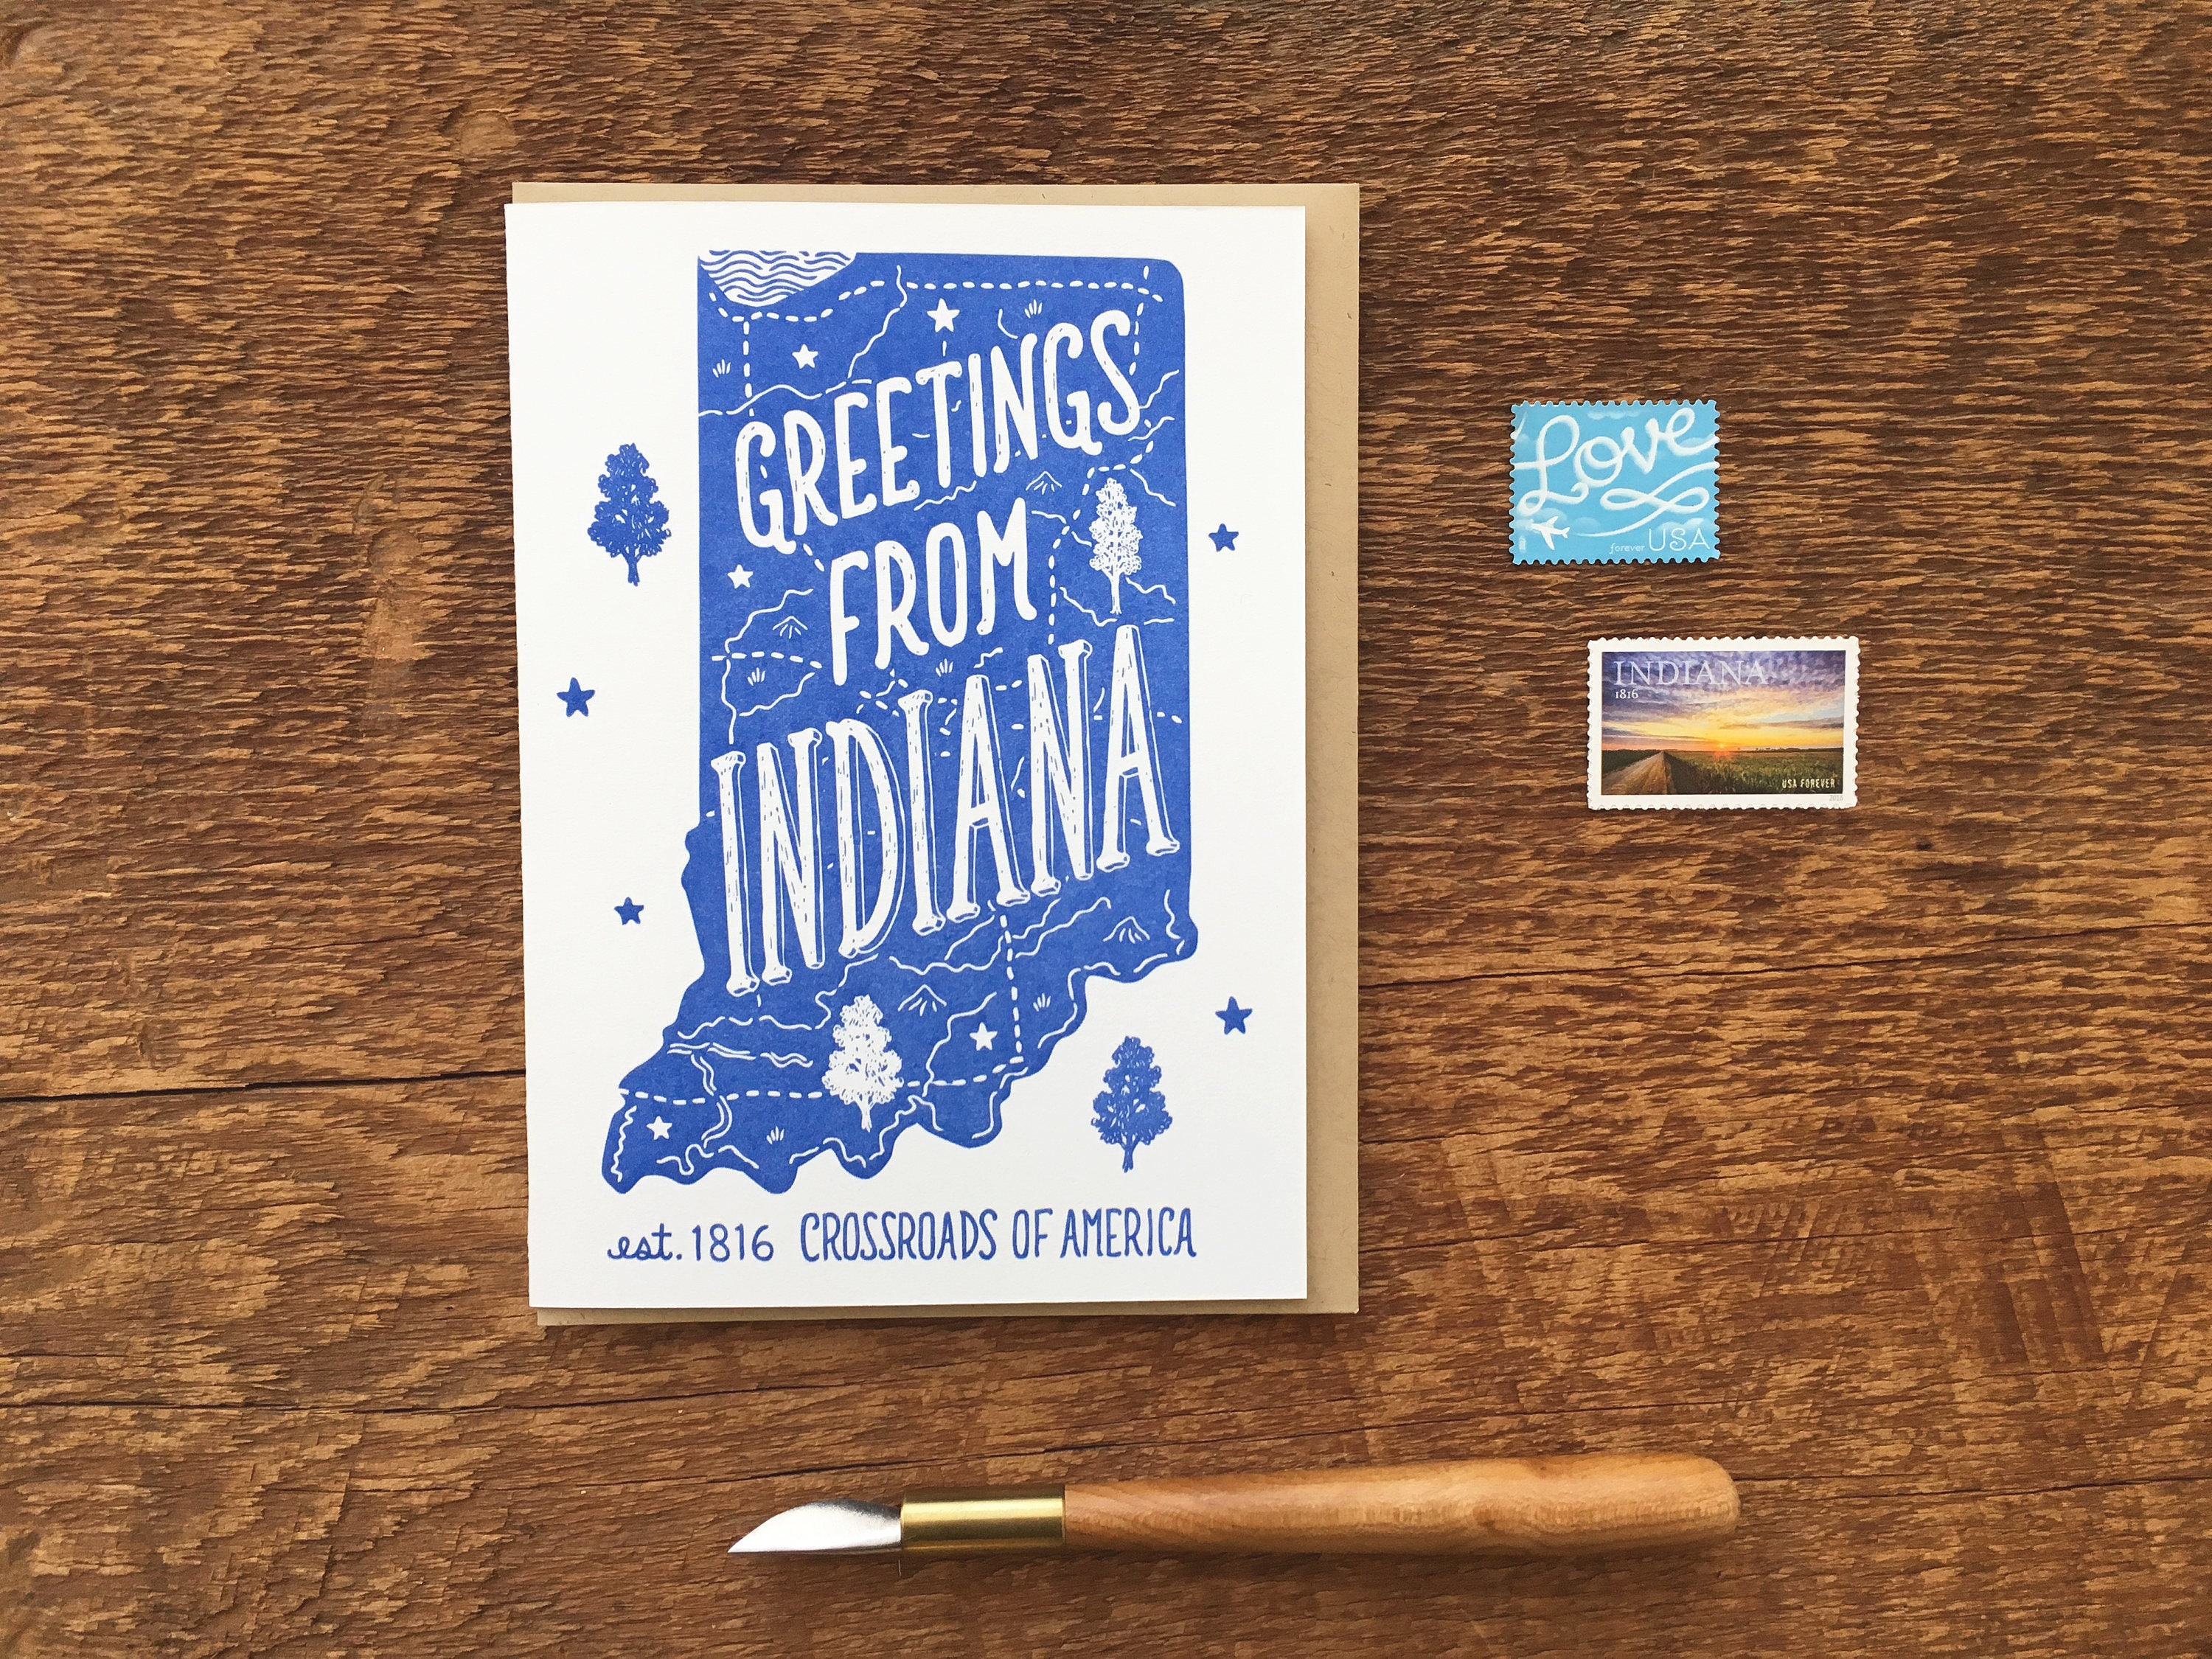 Indiana greeting card greetings from indiana a6 folded note description greetings from kristyandbryce Images